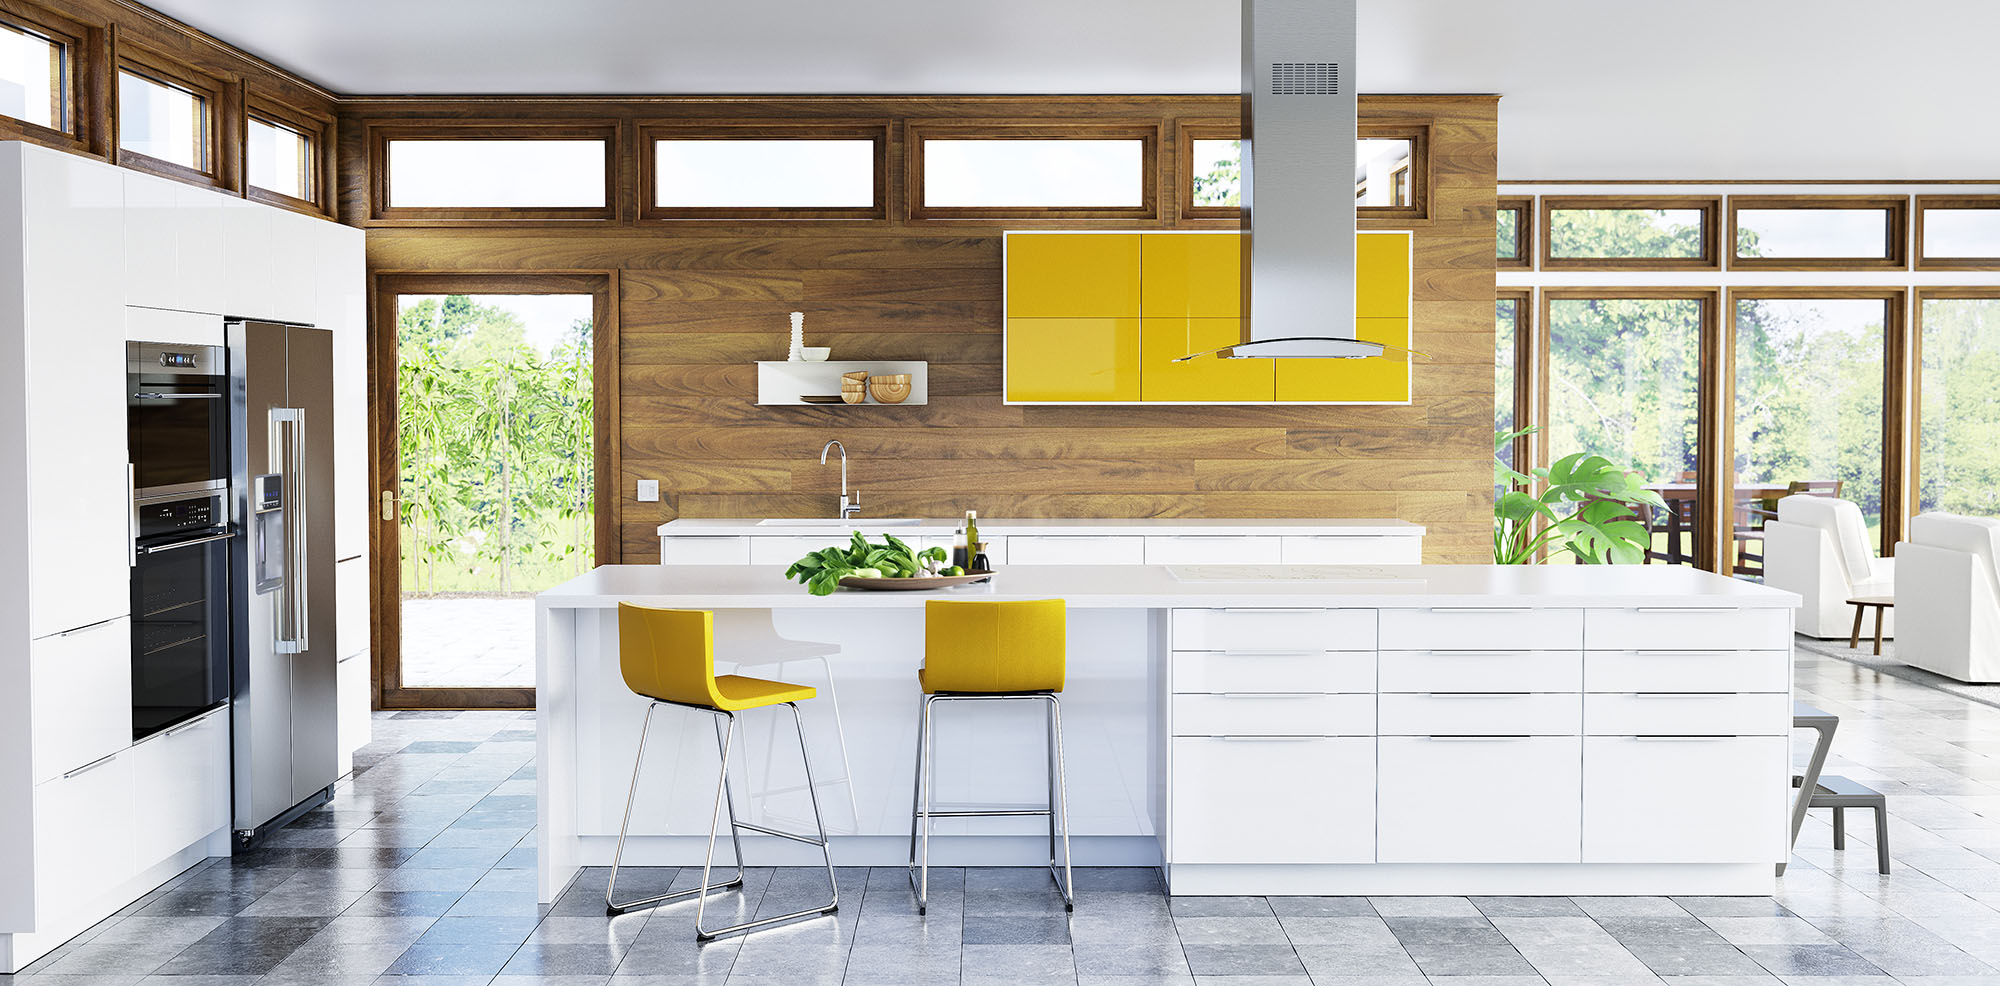 Agreable New IKEA SEKTION Kitchen RINGHULT High Gloss White And JÄRSTA High Gloss  Yellow (CNW Group. 784b4b89a76d03226013656a39dff2f4